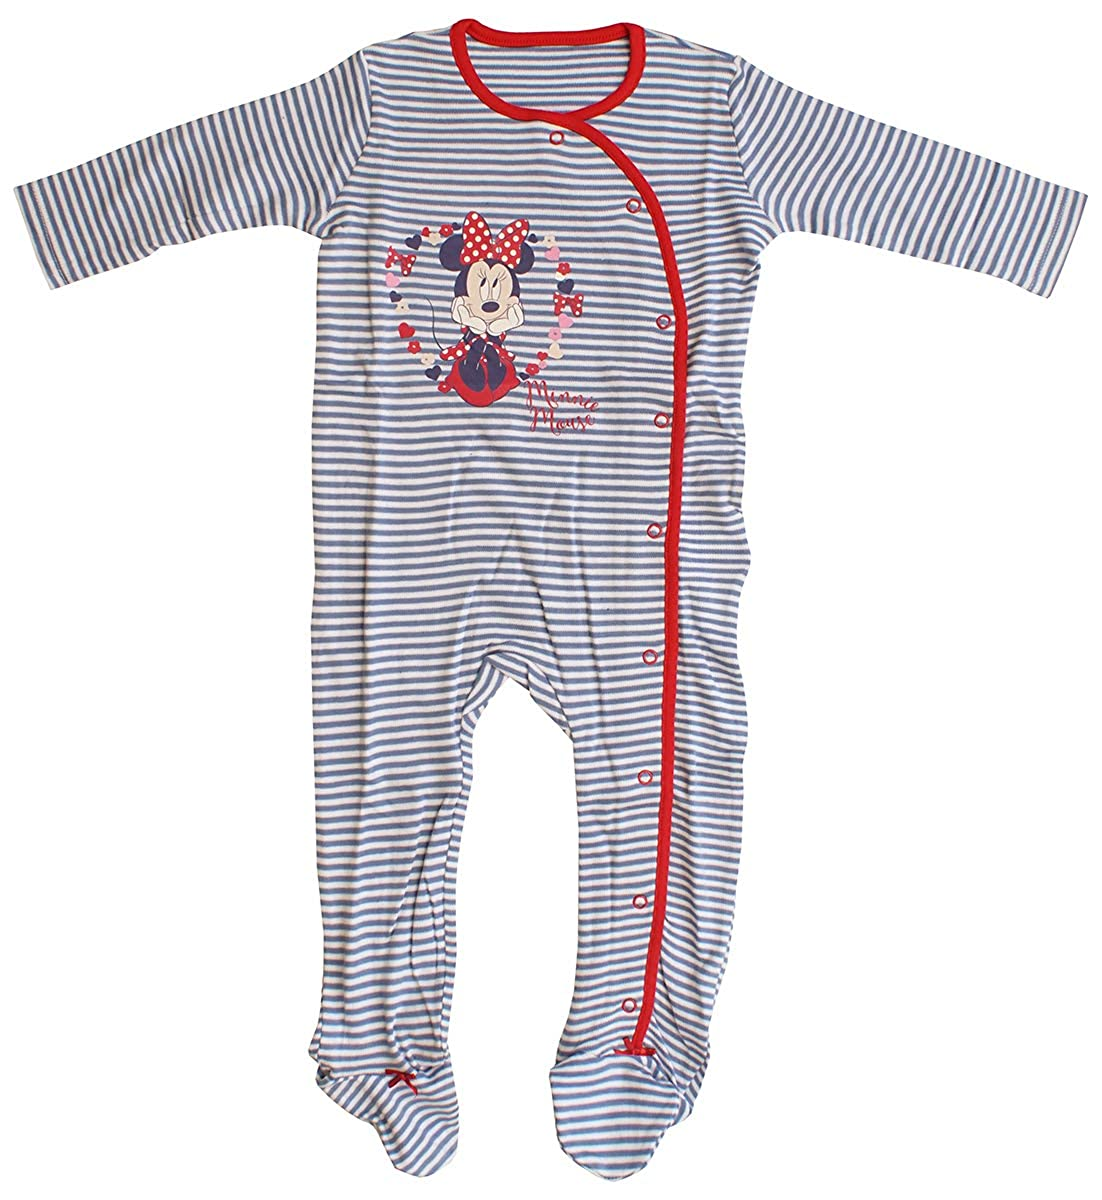 Girls Baby Disney Minnie Mouse Stripe Sleepsuit Romper Sizes from Newborn to 18 Months